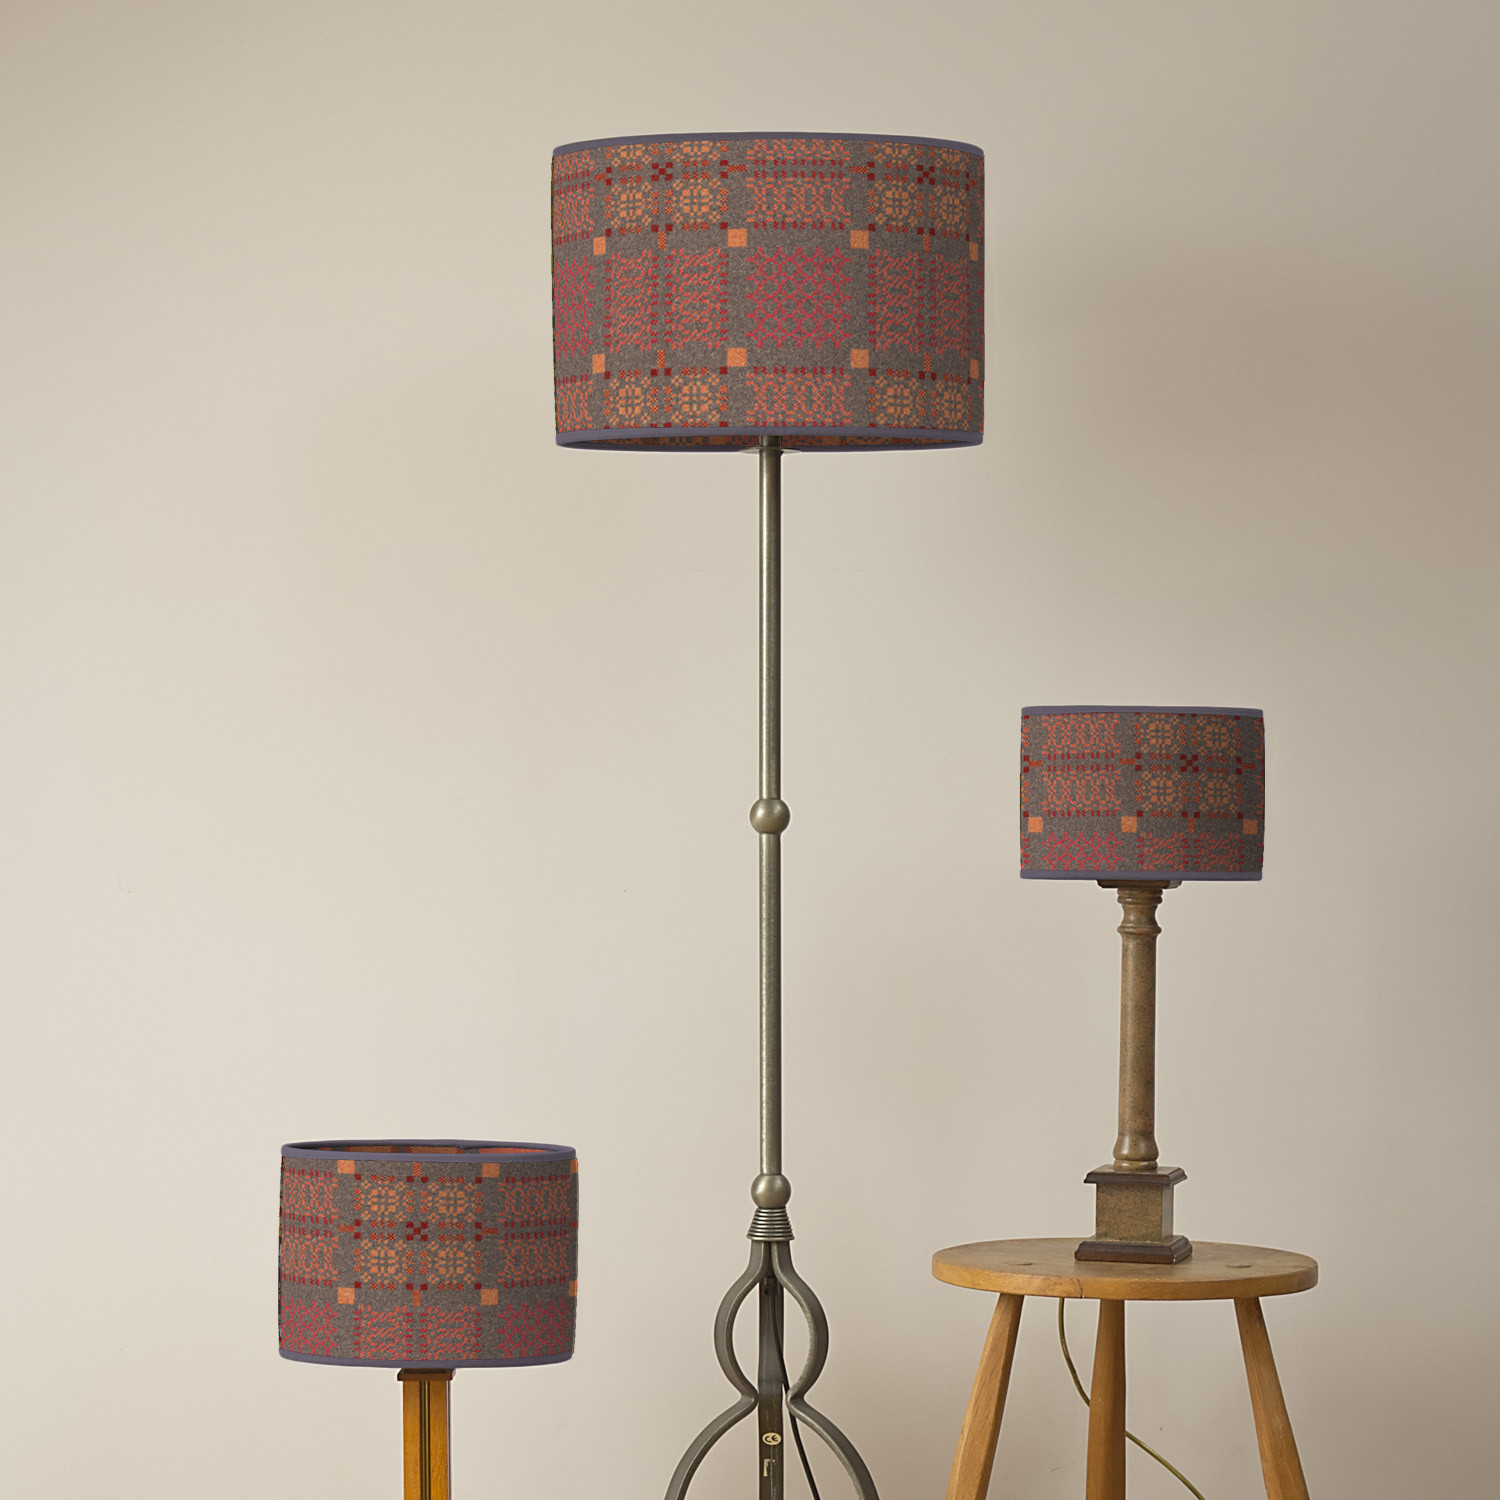 Knot Garden copper oval lampshades